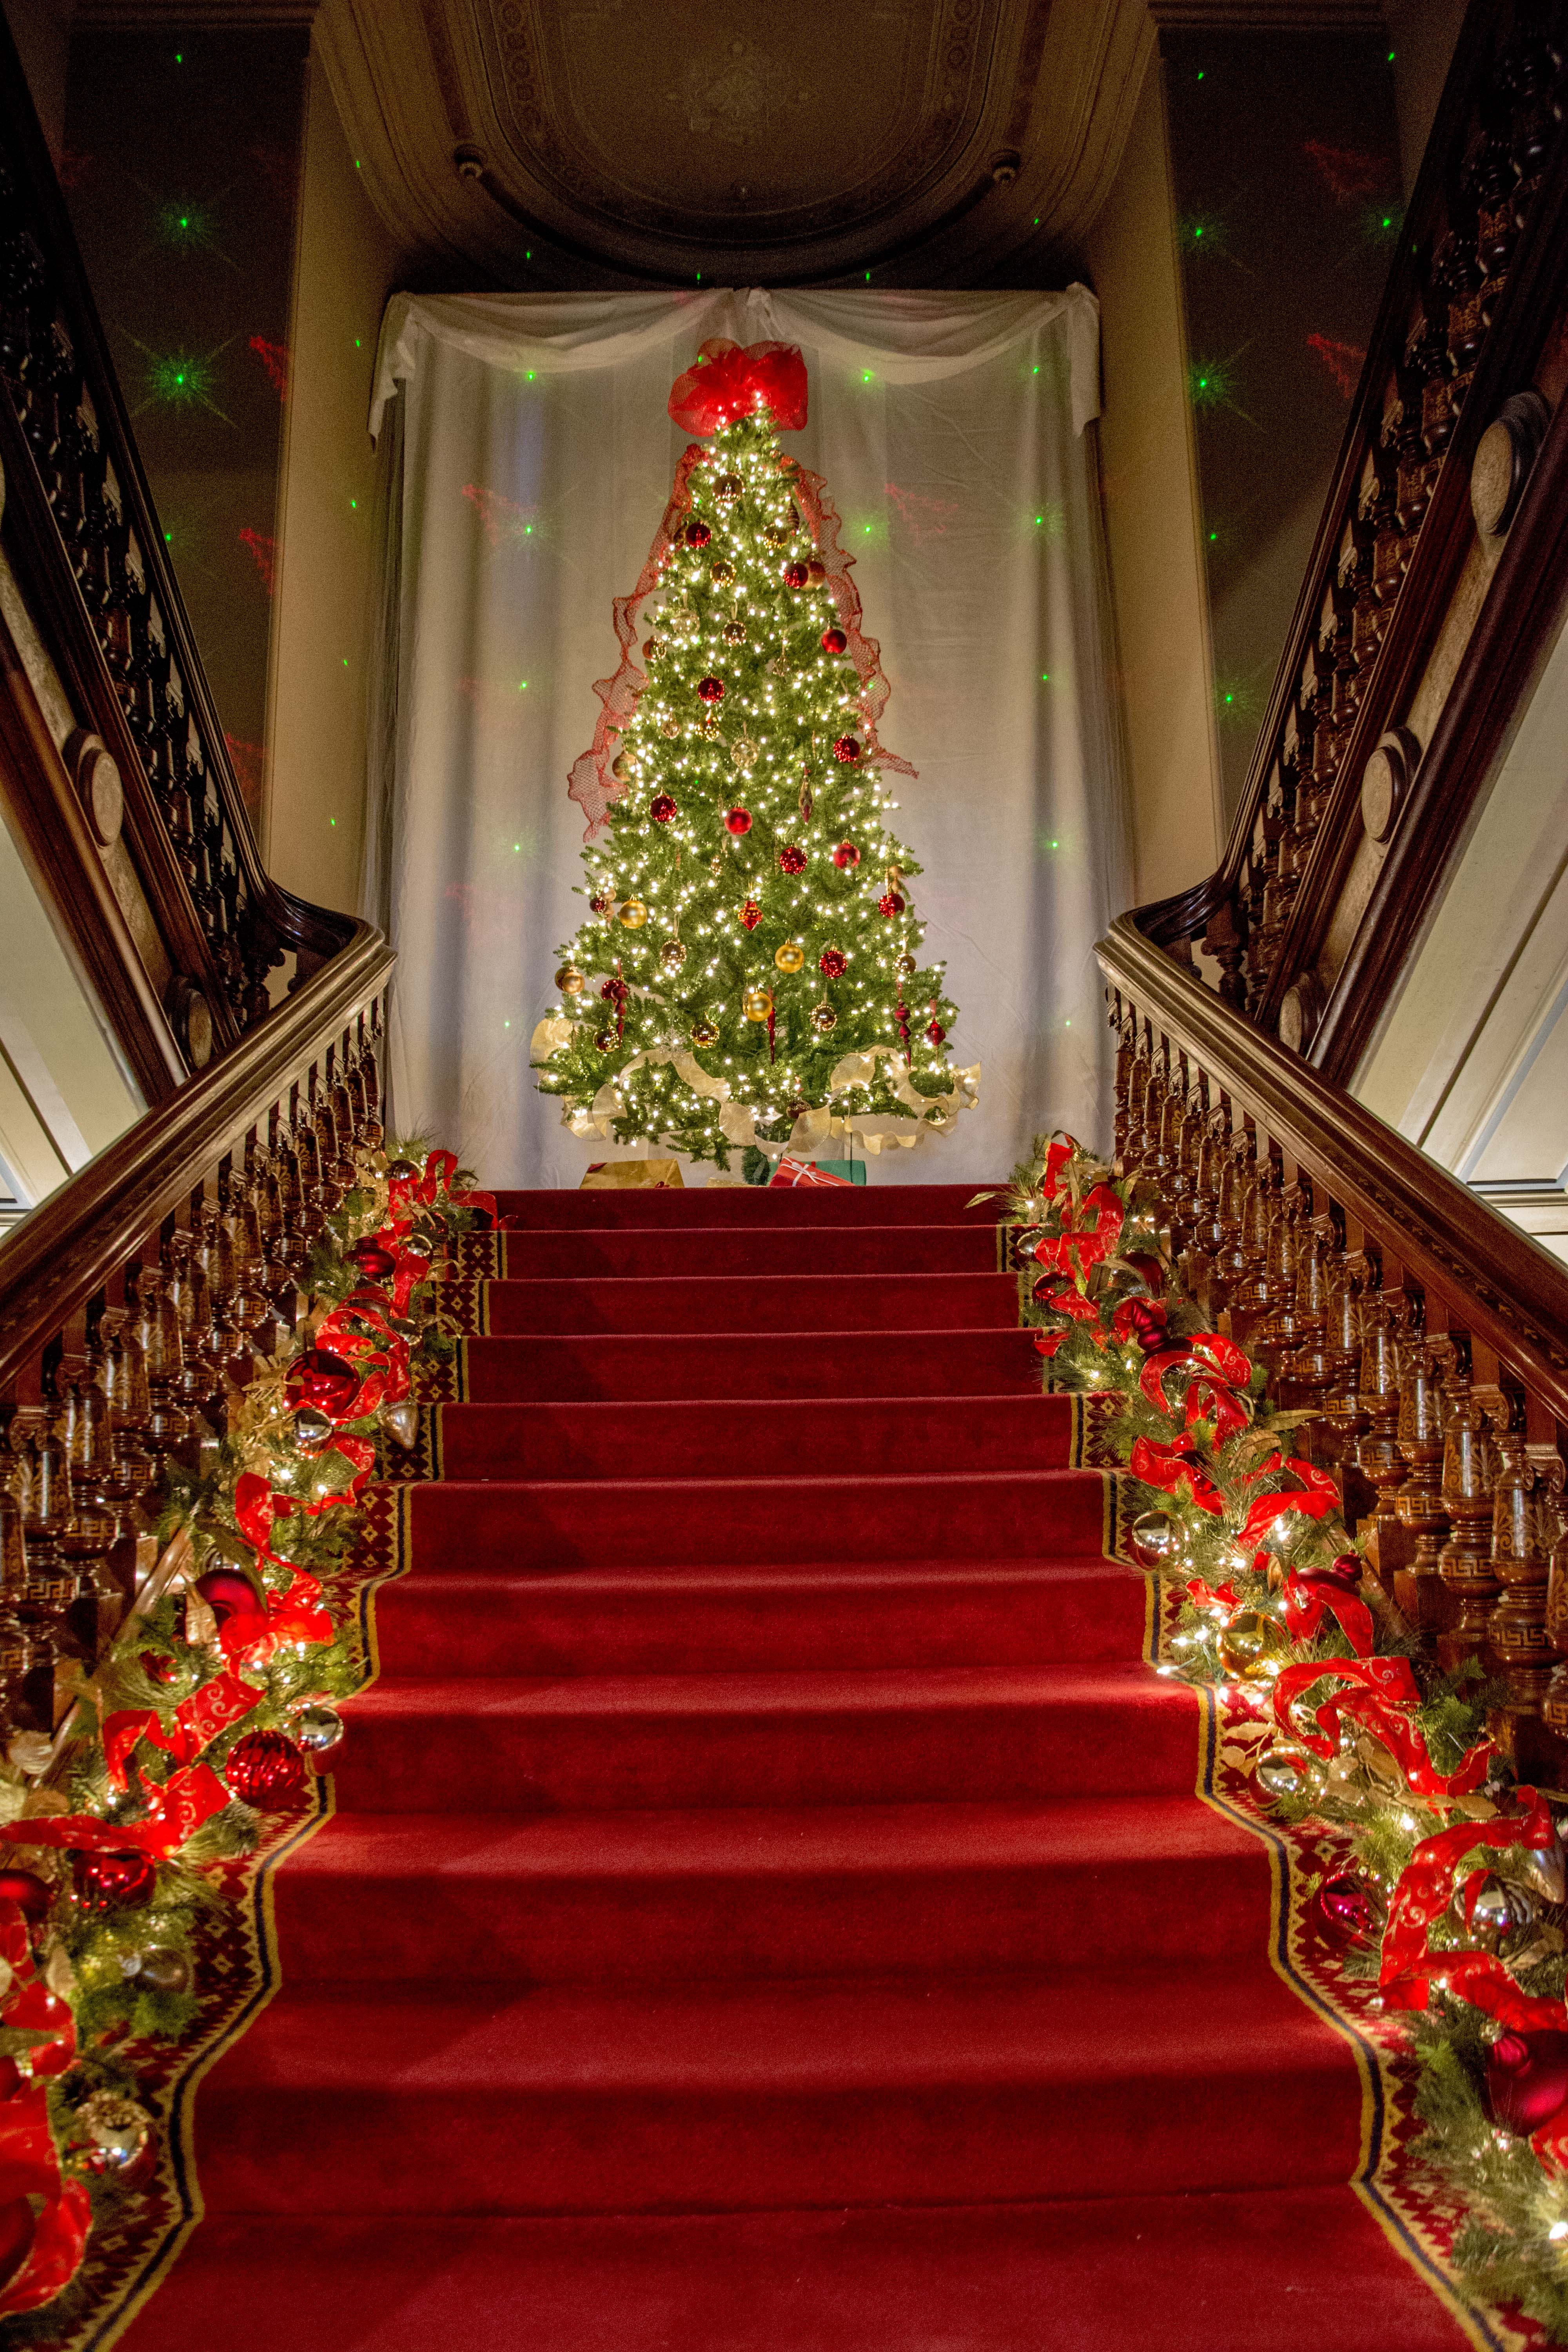 Christmas Activities In Ct 2019 A Magical Christmas Eve at the Lockwood Mathews Mansion Museum